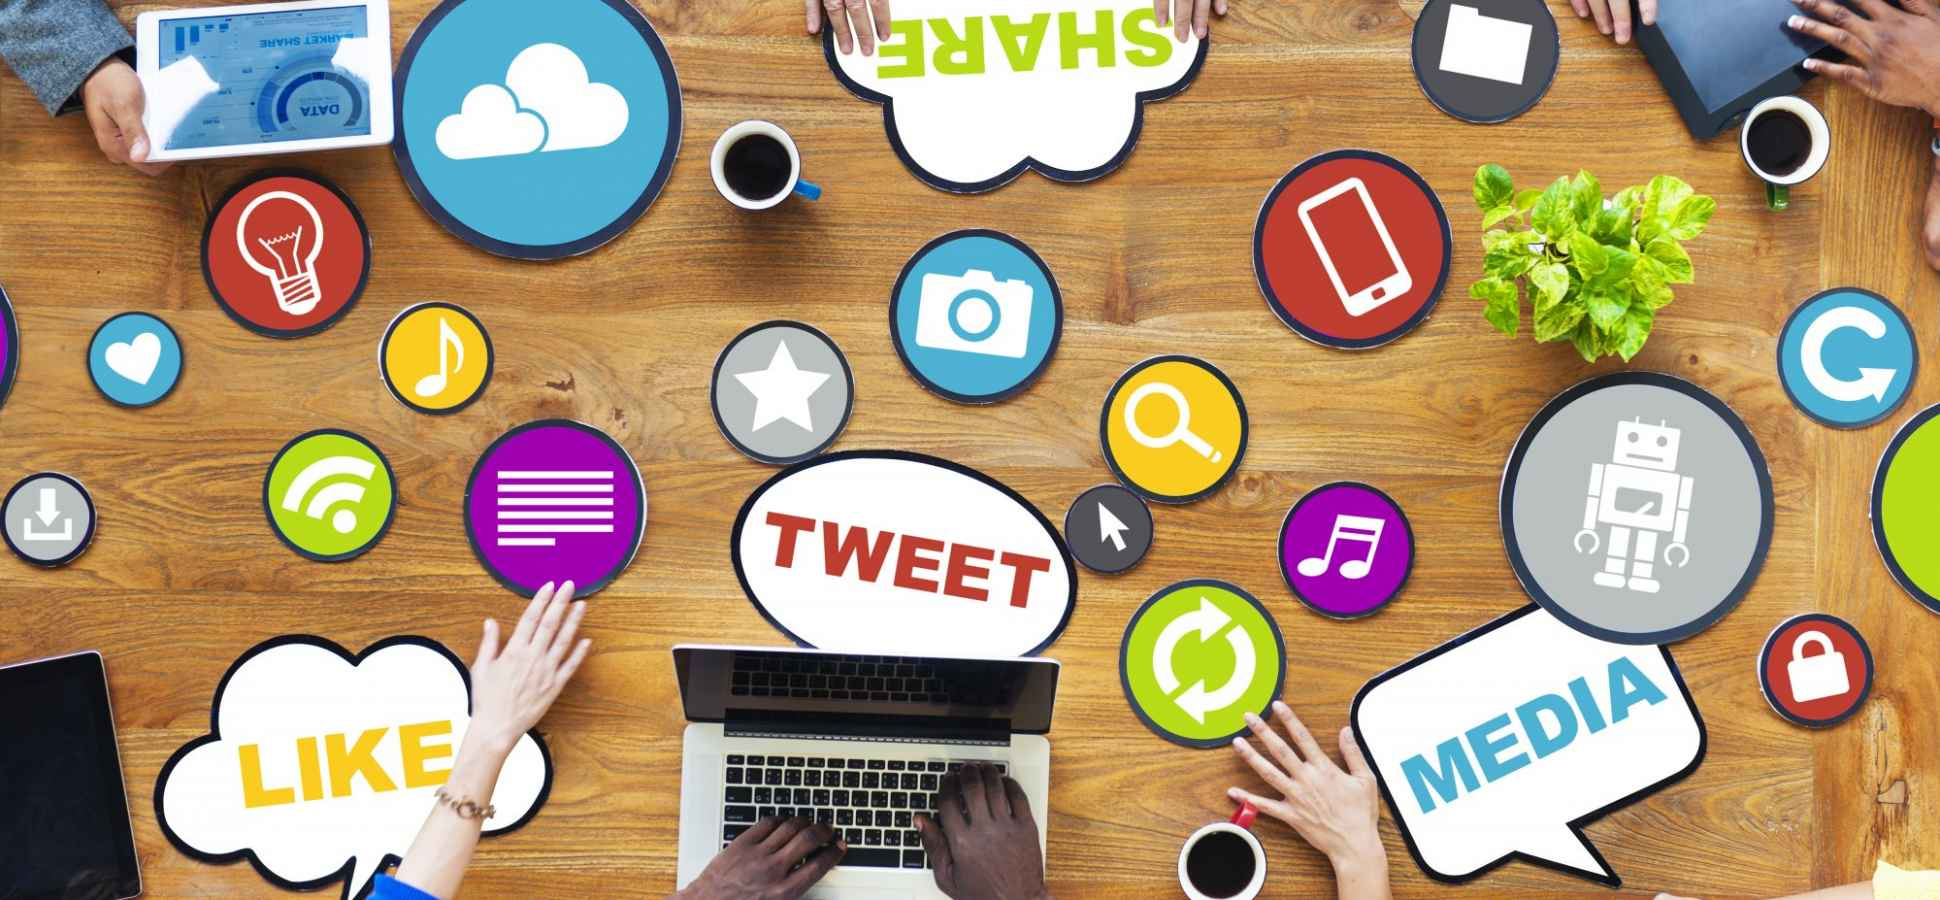 4 Trends in Social Media That Are Changing the Game